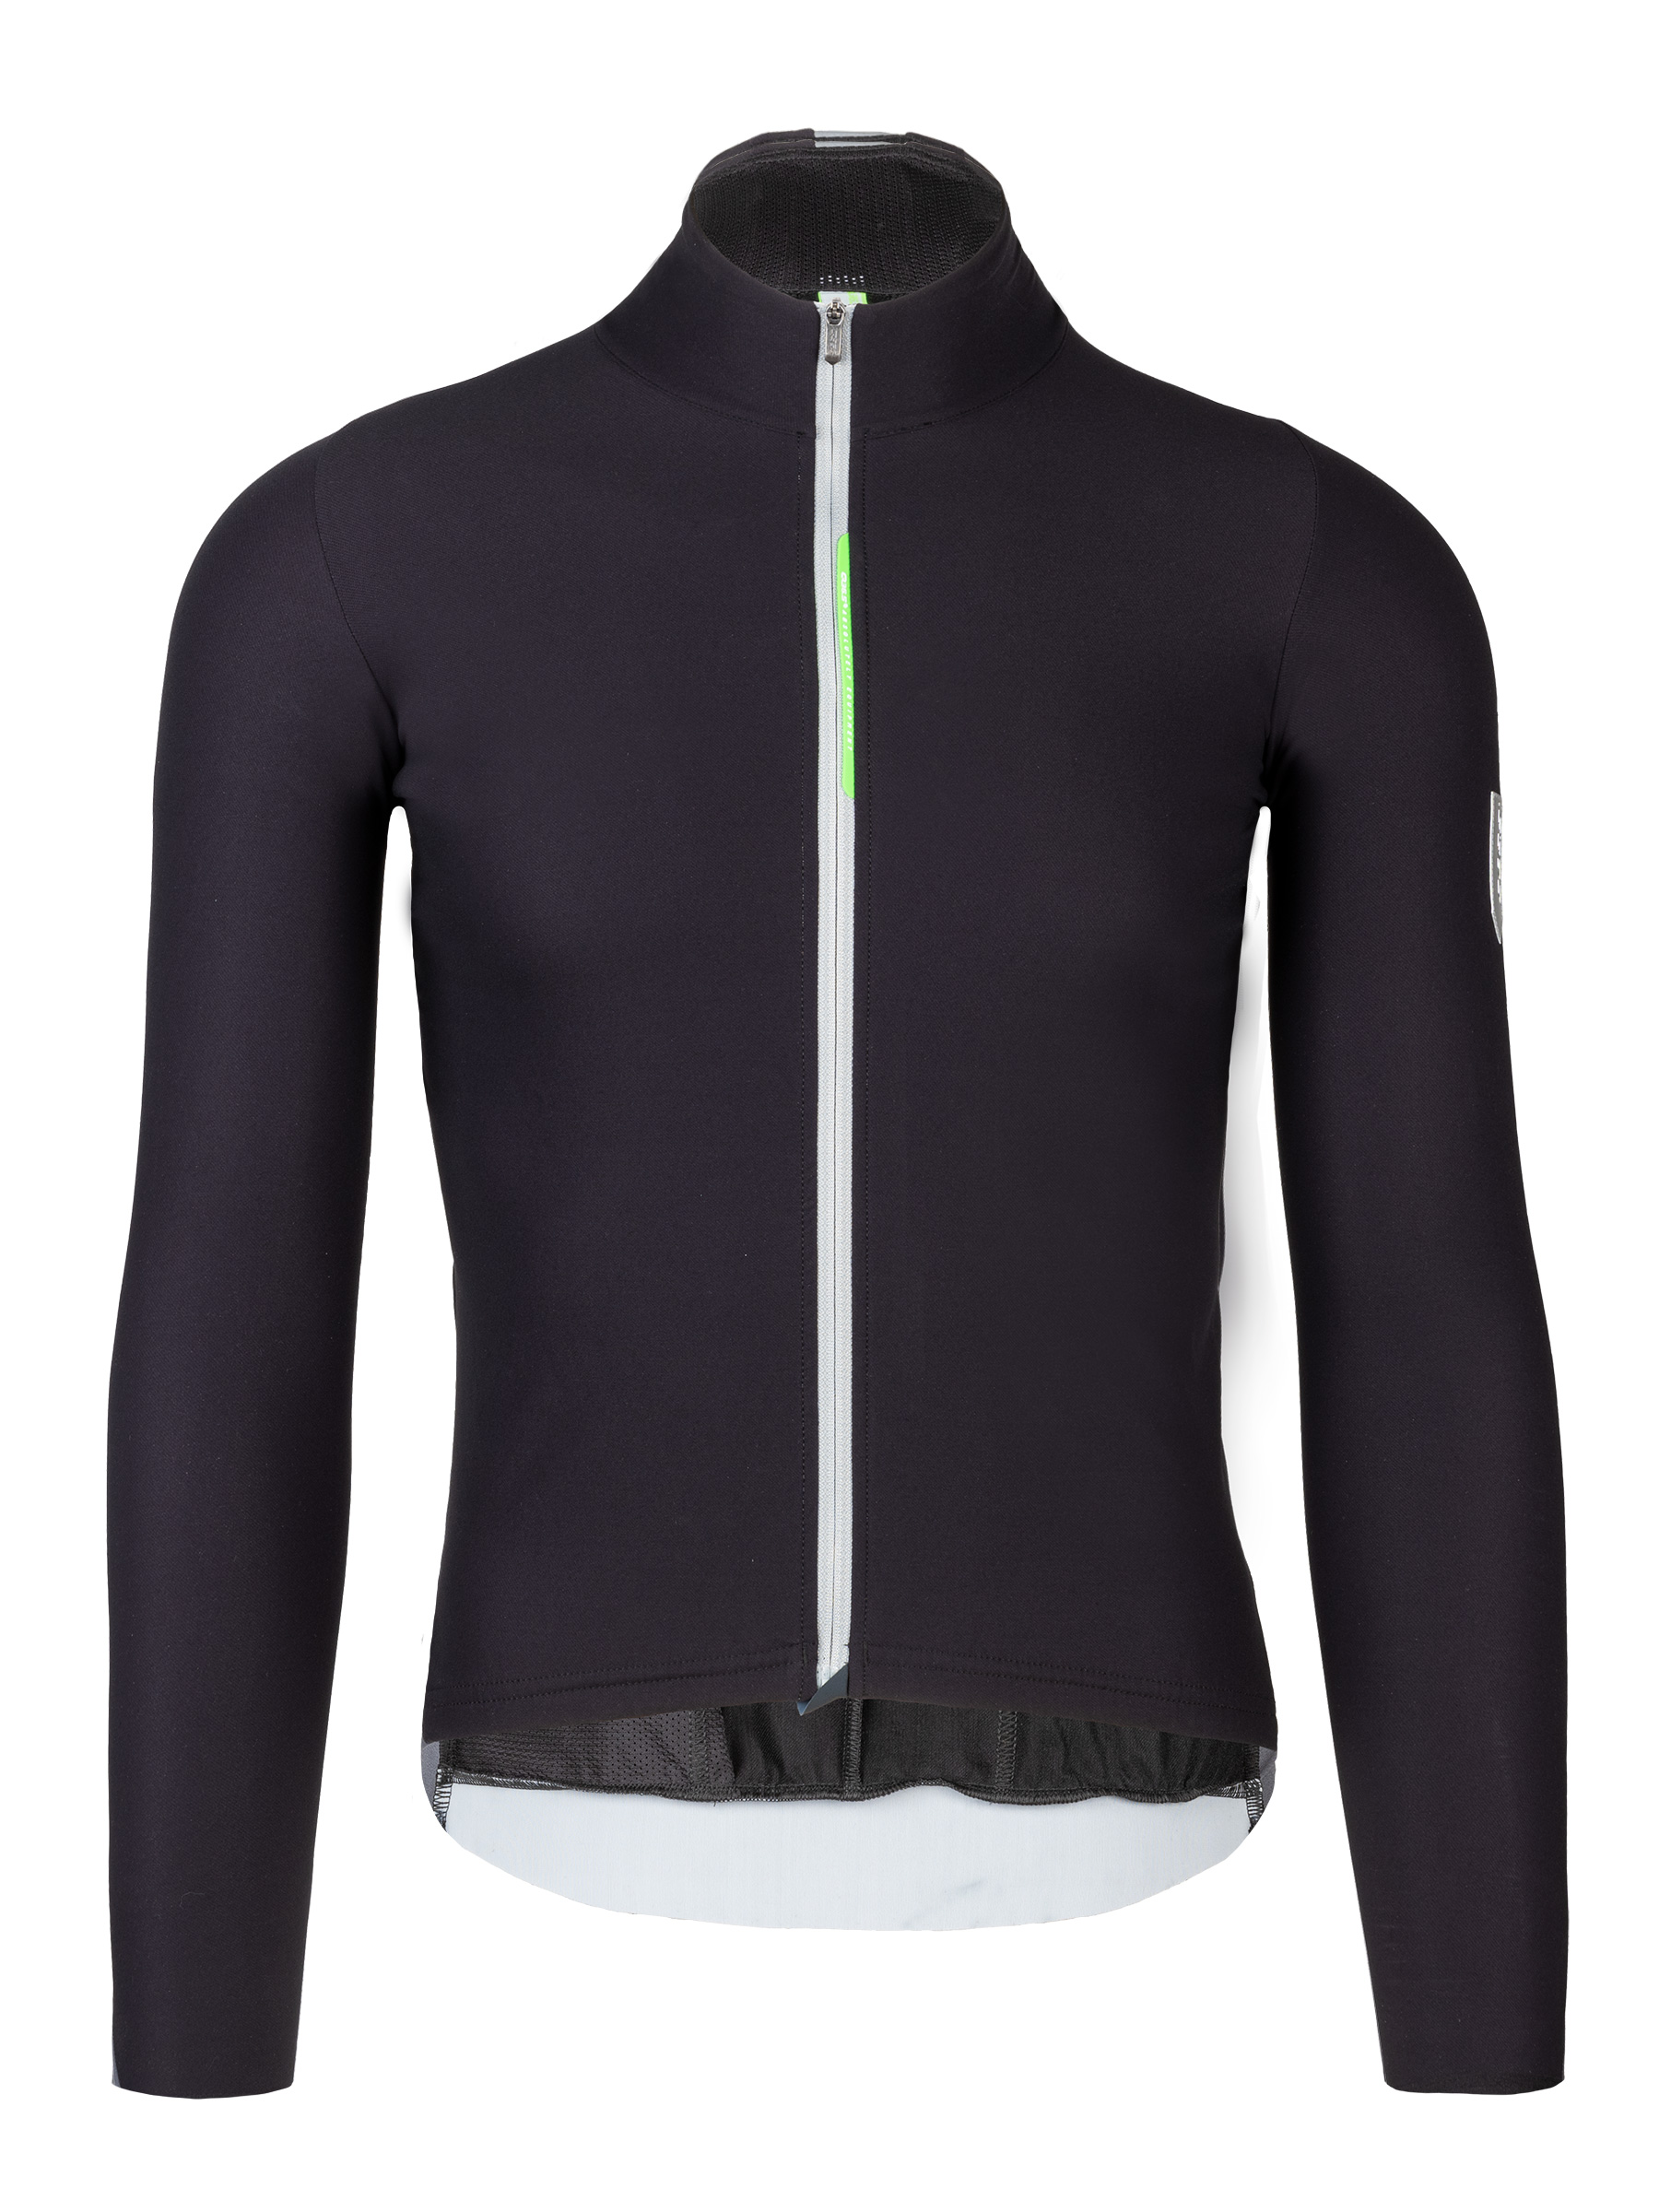 cycling long sleeve jersey WoolF Q36.5 - grey - 043